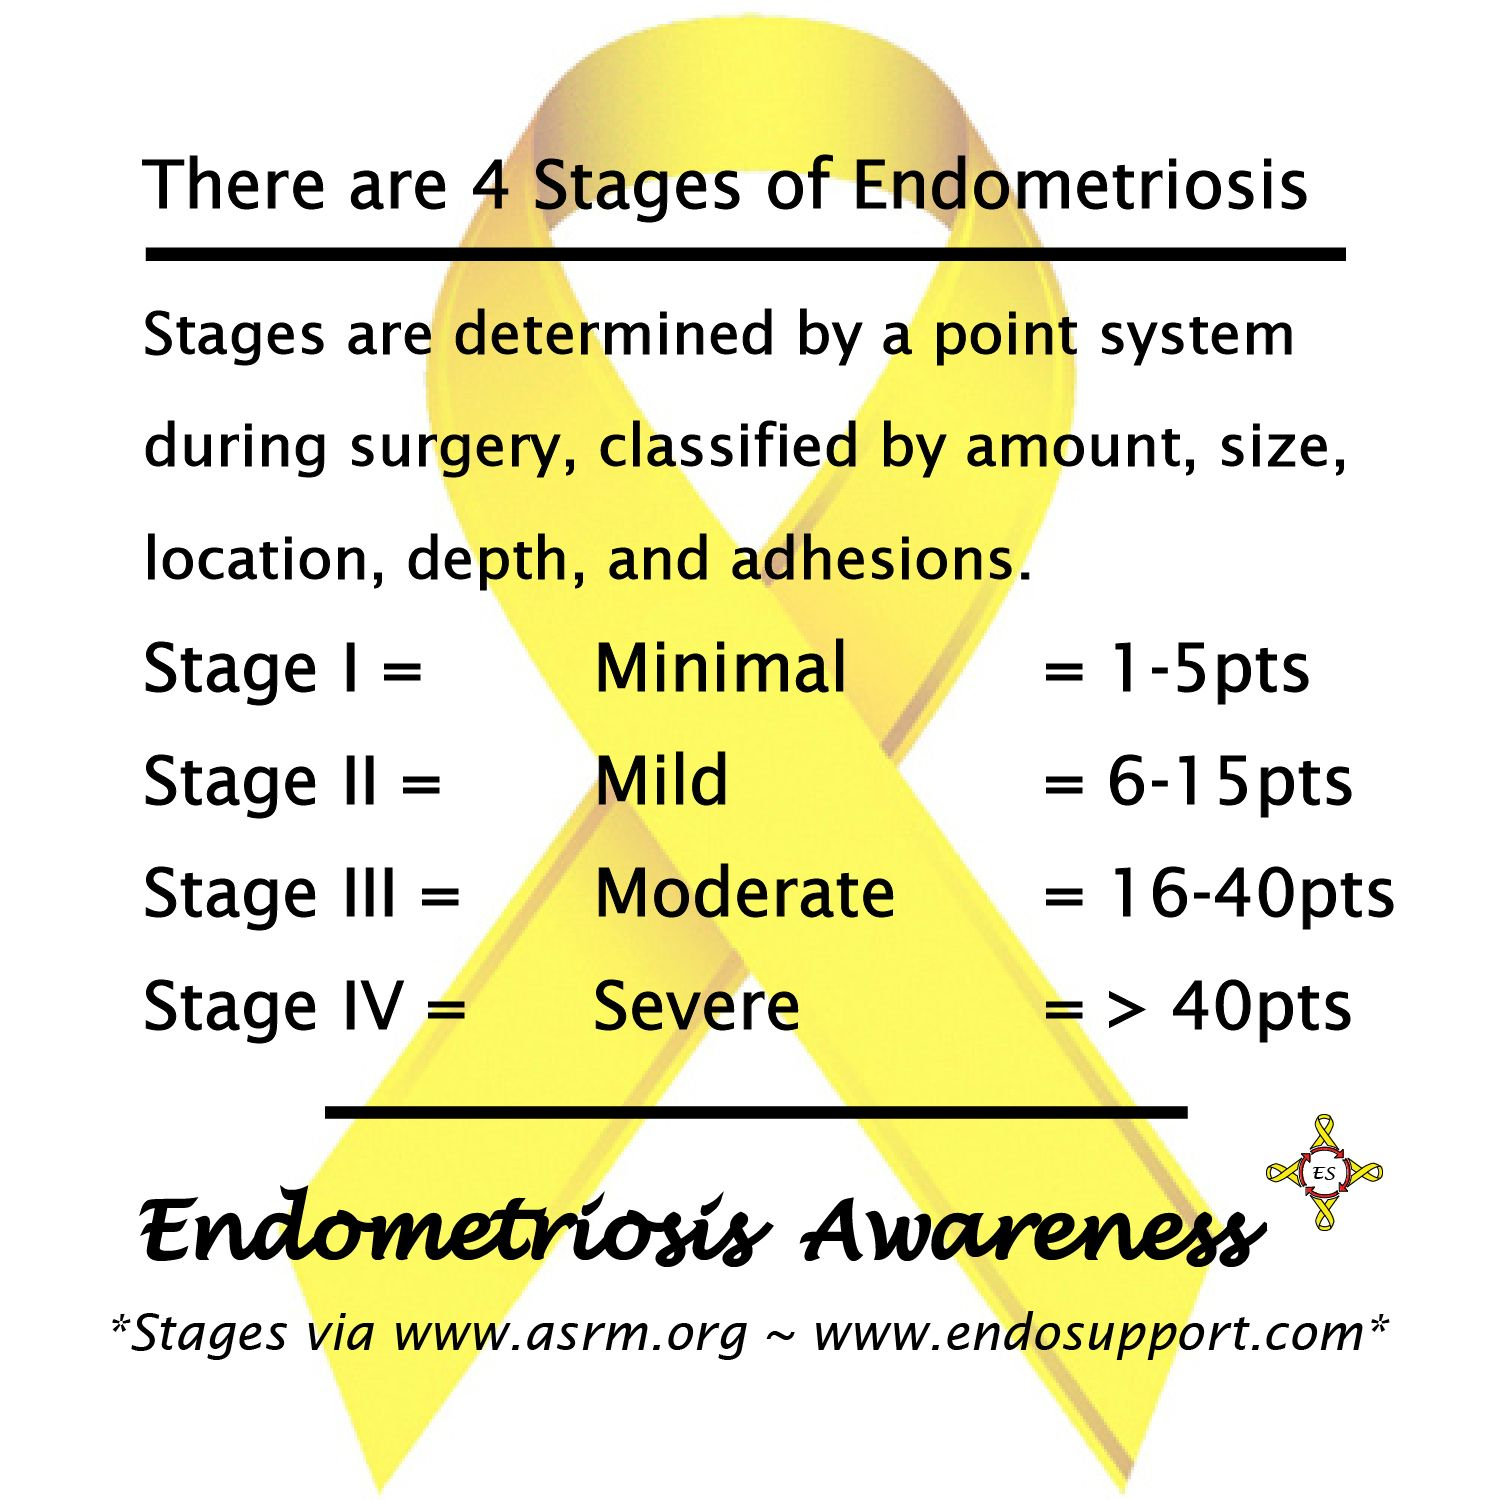 I have stage 4 endometriosis have had a hysterectomy another surgery soon